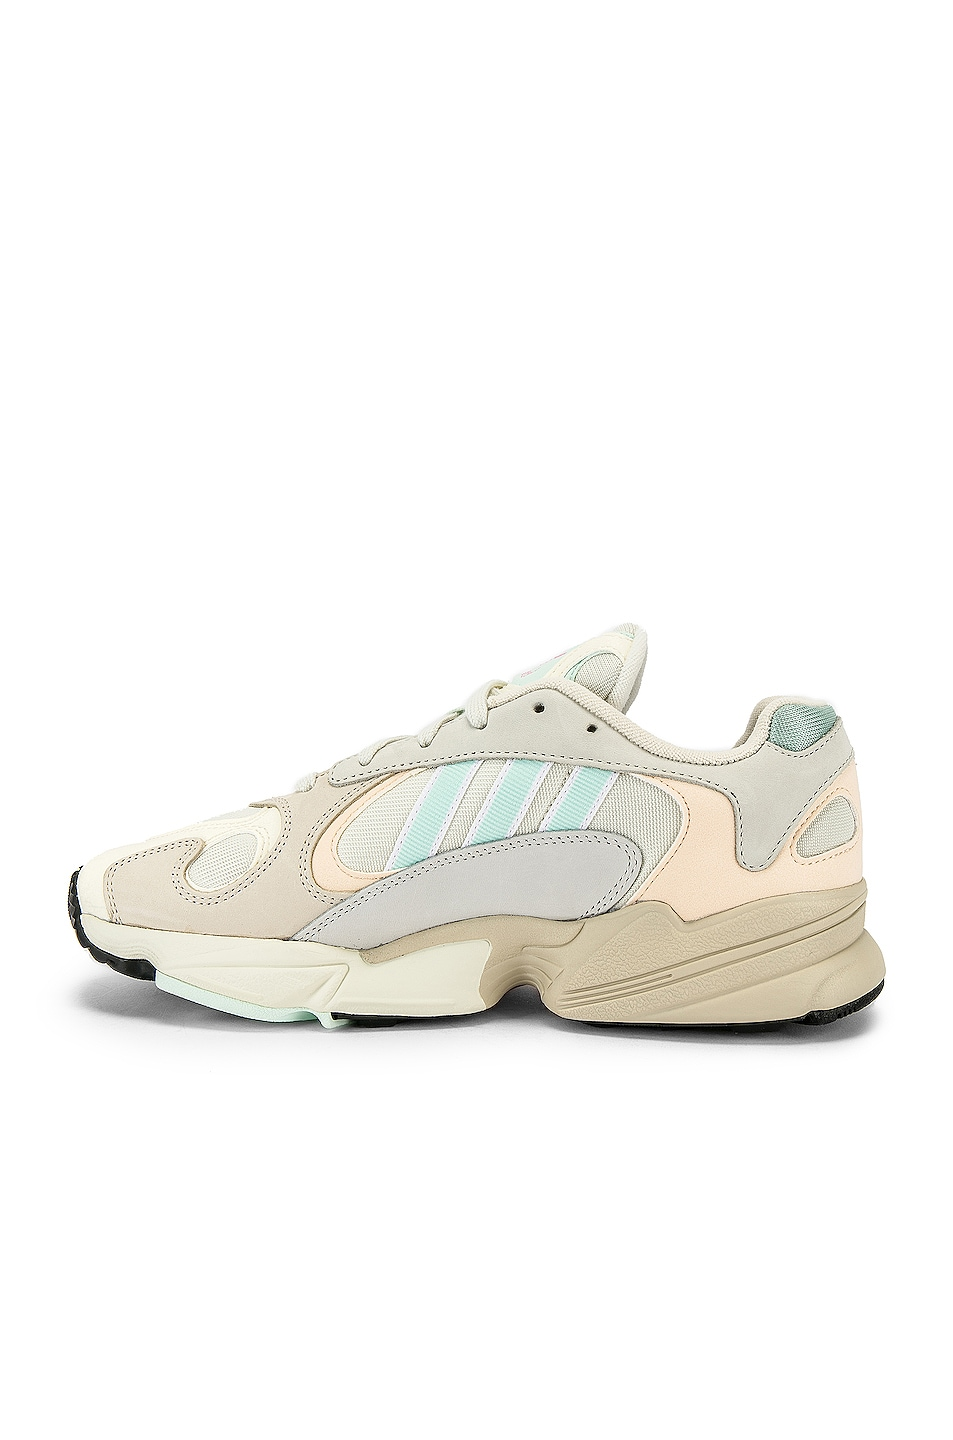 Image 5 of adidas Originals Yung-1 in Off White & Ice